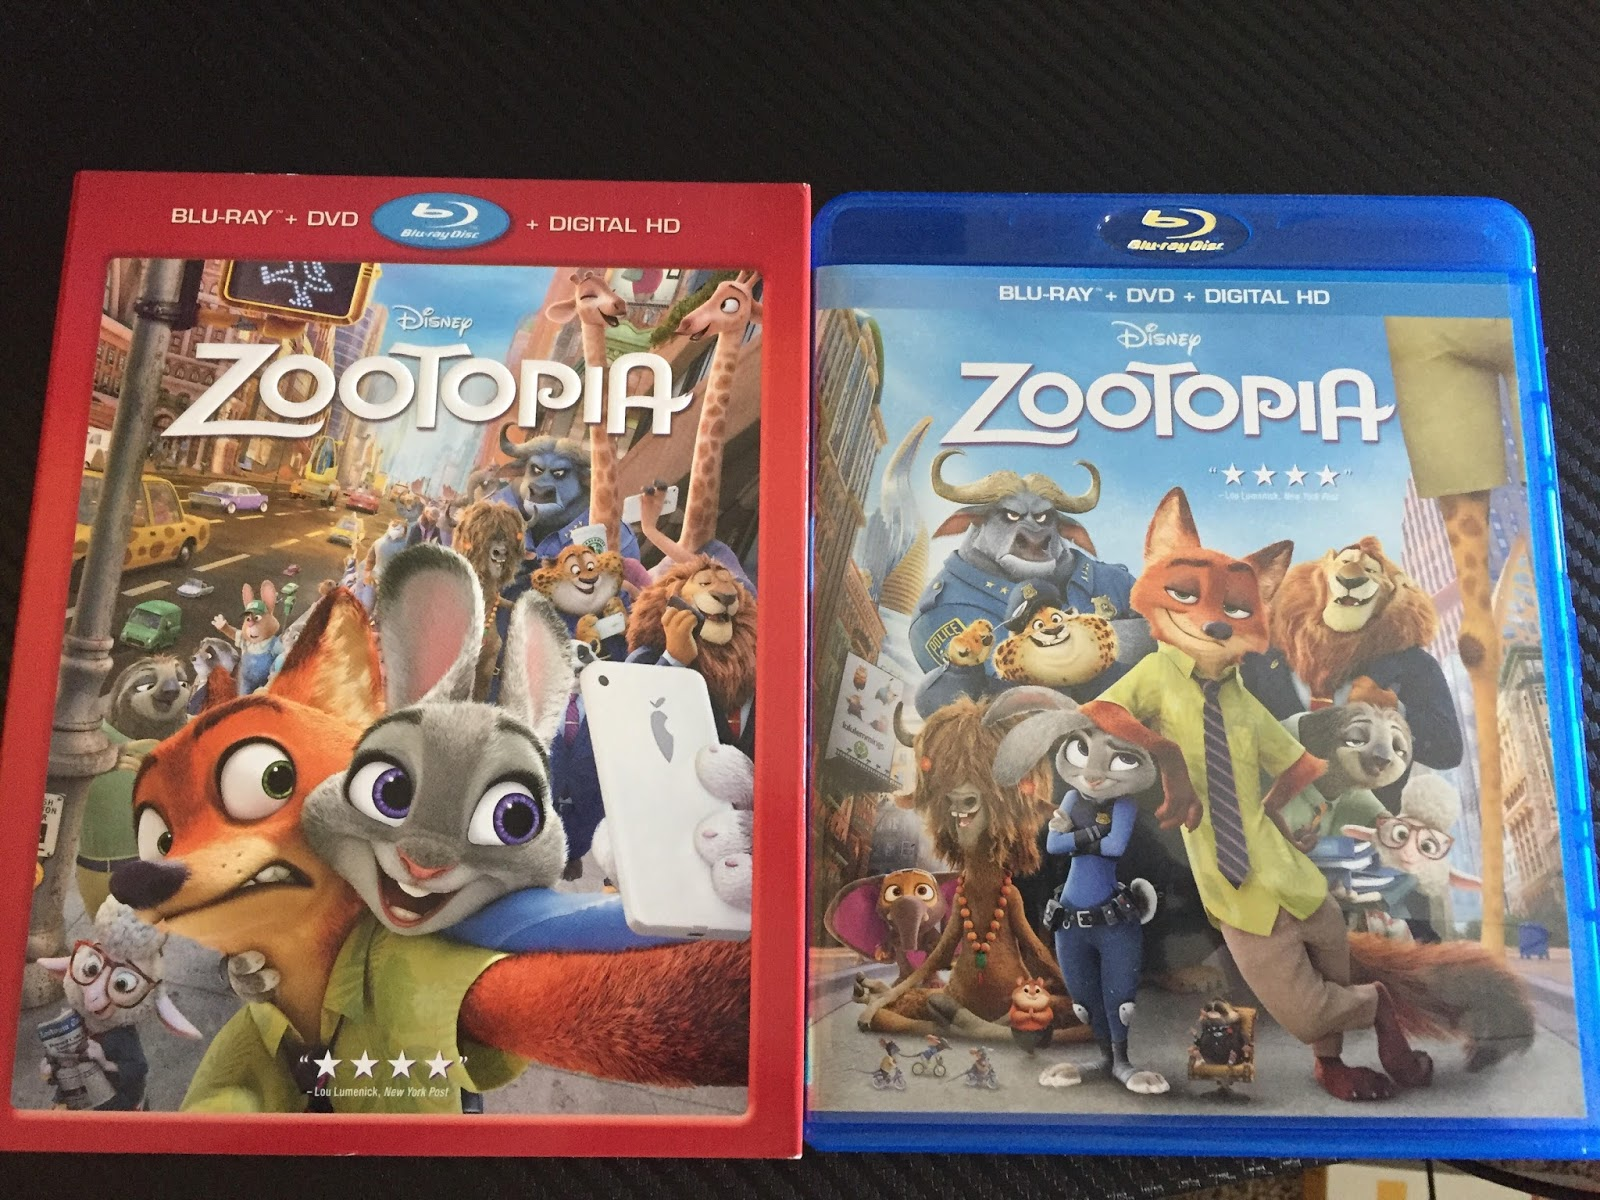 Review: Zootopia Blu Ray and DVD